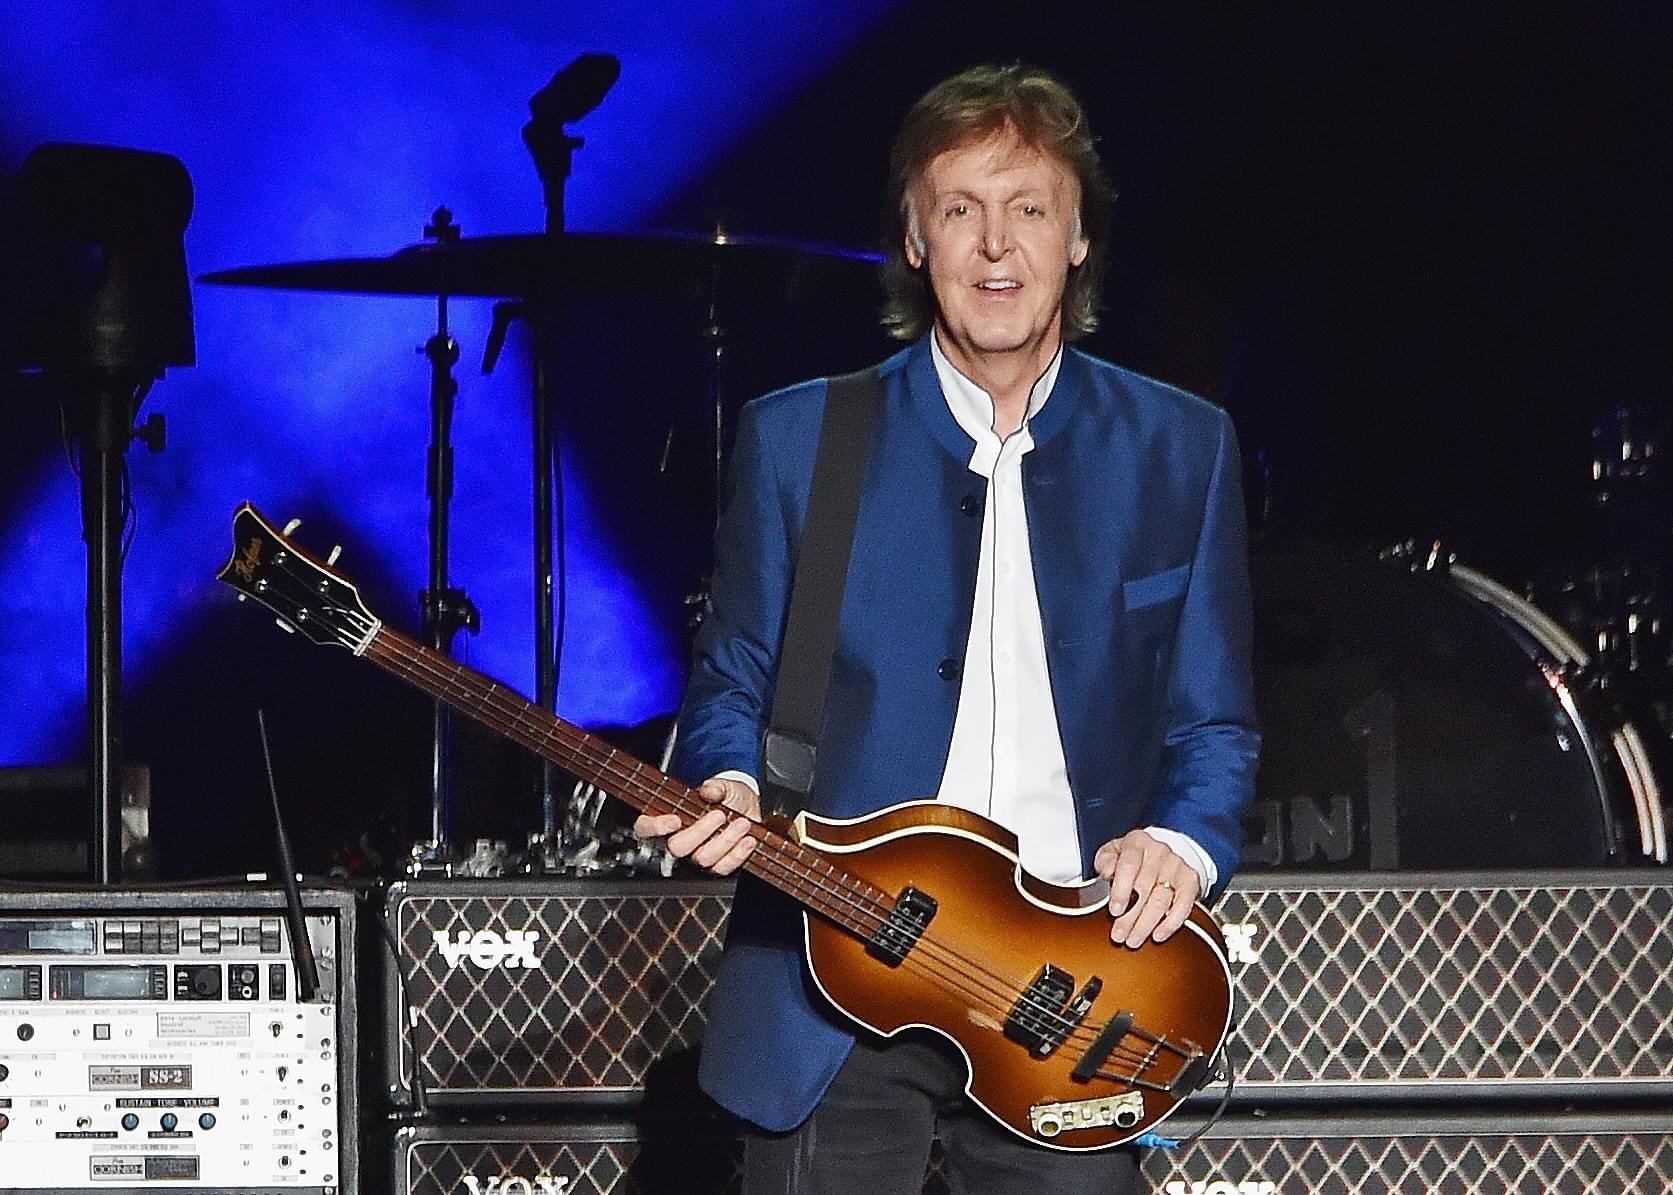 FREE MUSIC: Paul McCartney offers vintage Billy Joel band collaboration song as free download